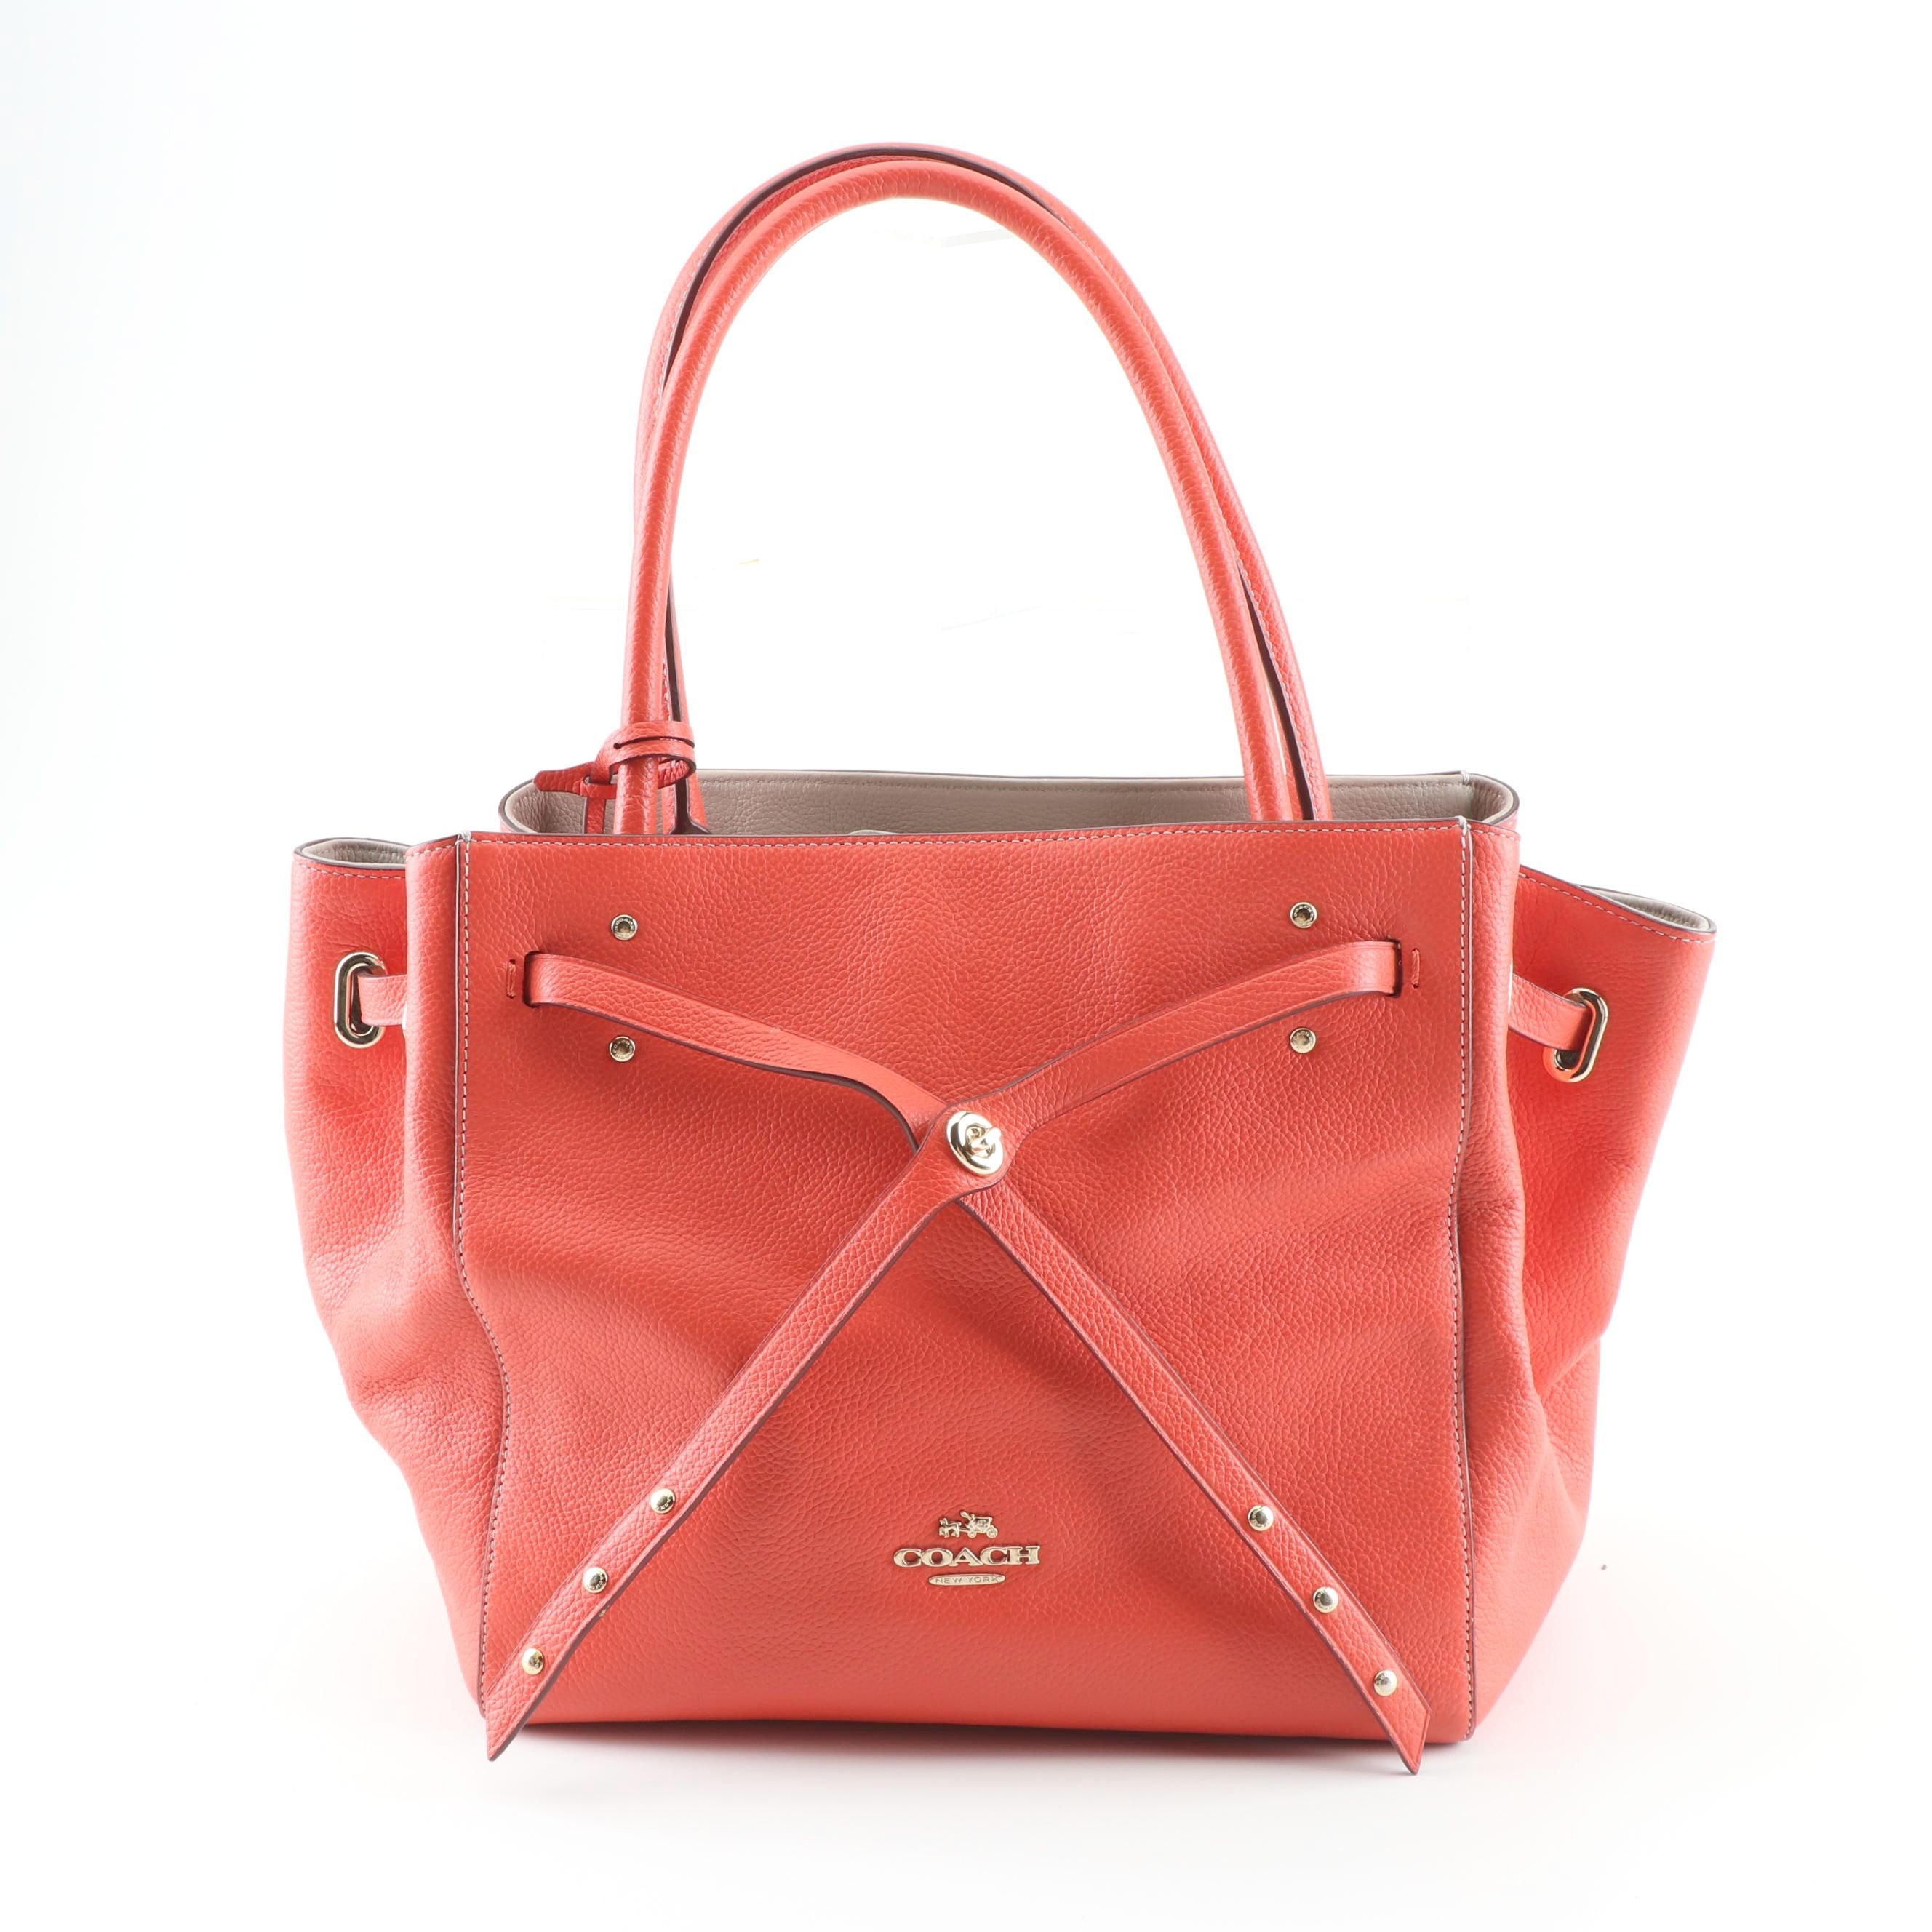 Coach Turnlock Tie Red Leather Satchel